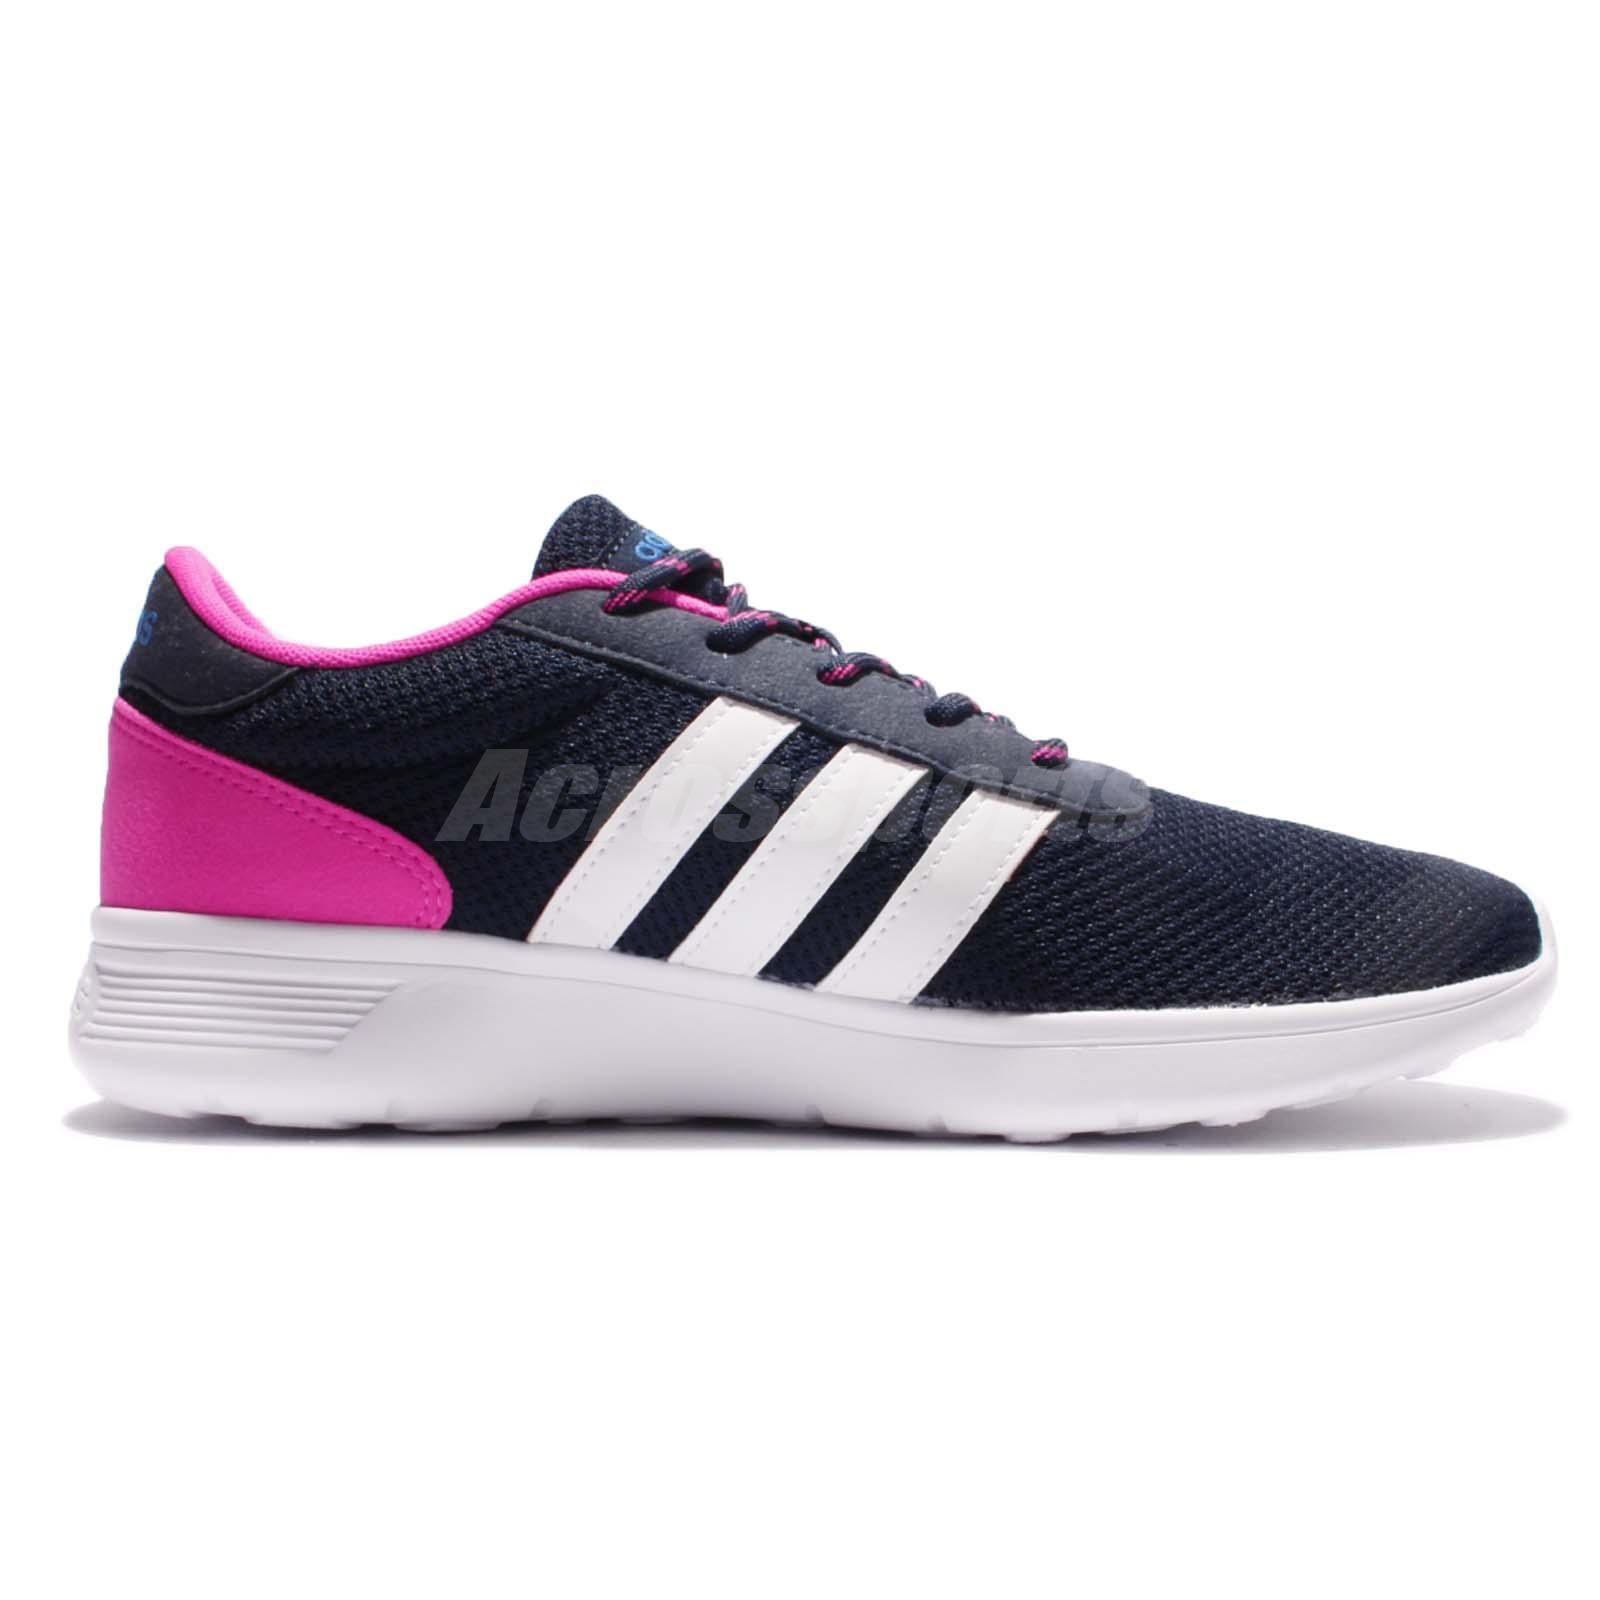 adidas neo label lite racer w navy pink white women. Black Bedroom Furniture Sets. Home Design Ideas